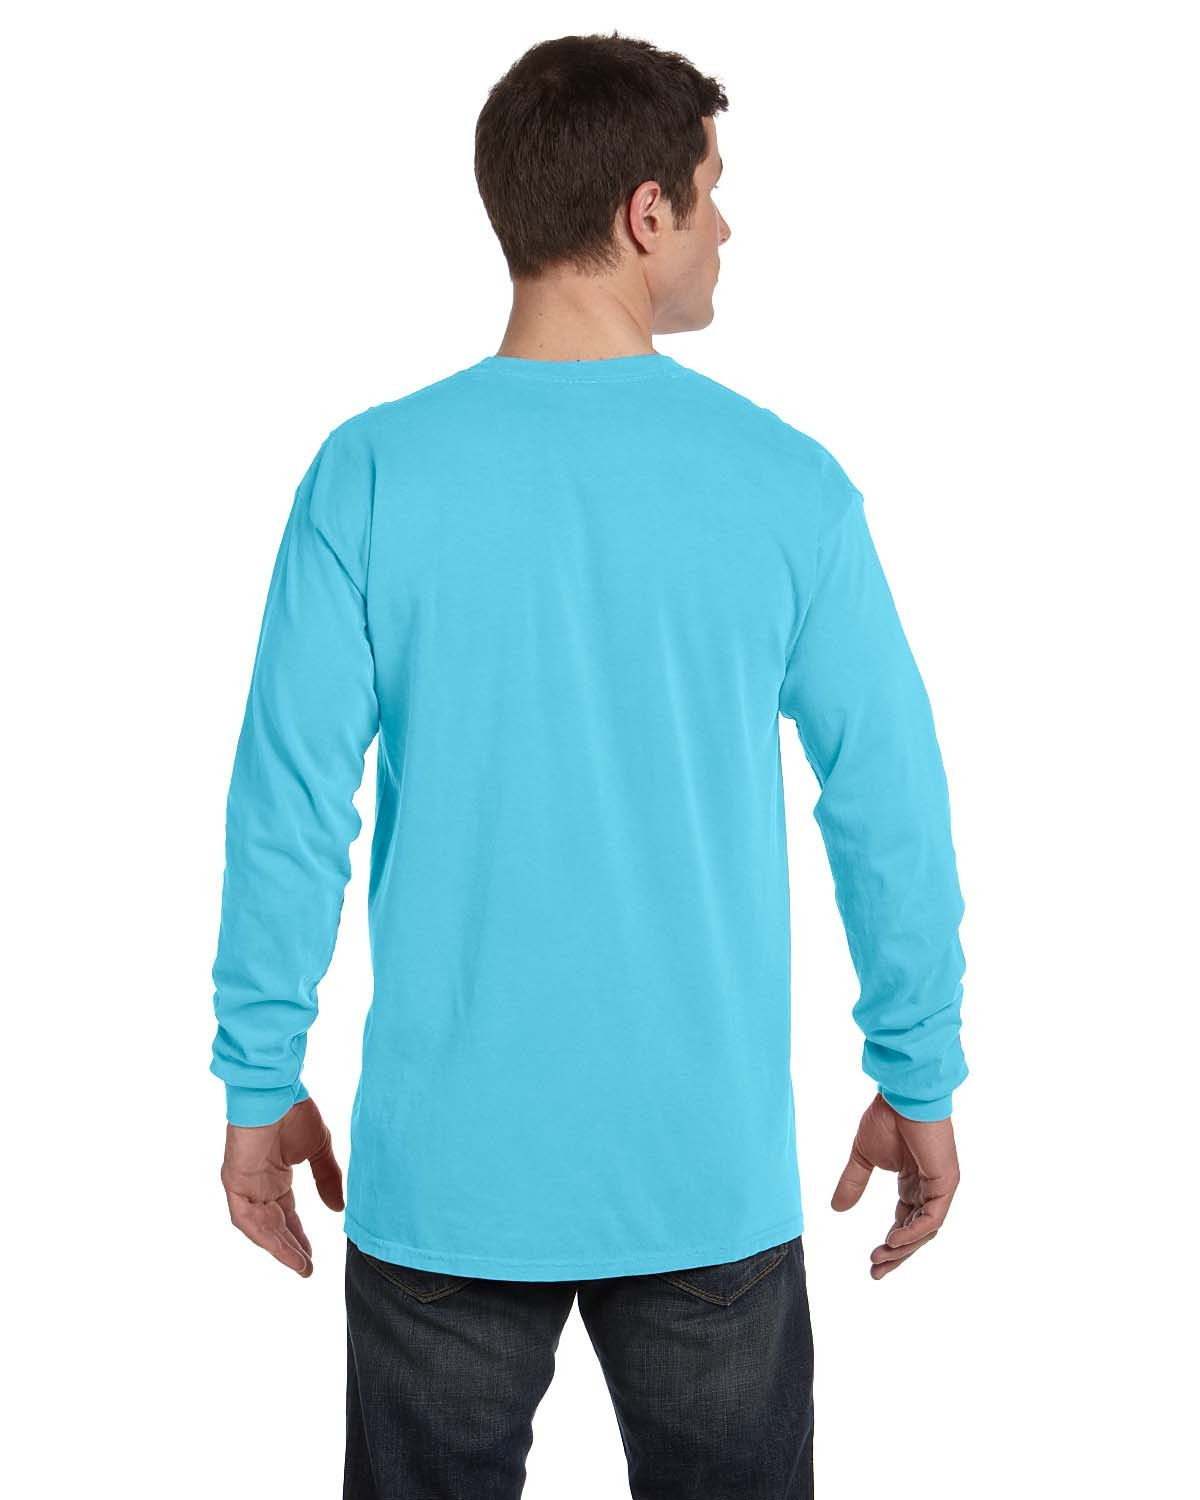 C6014 Comfort Colors LAGOON BLUE